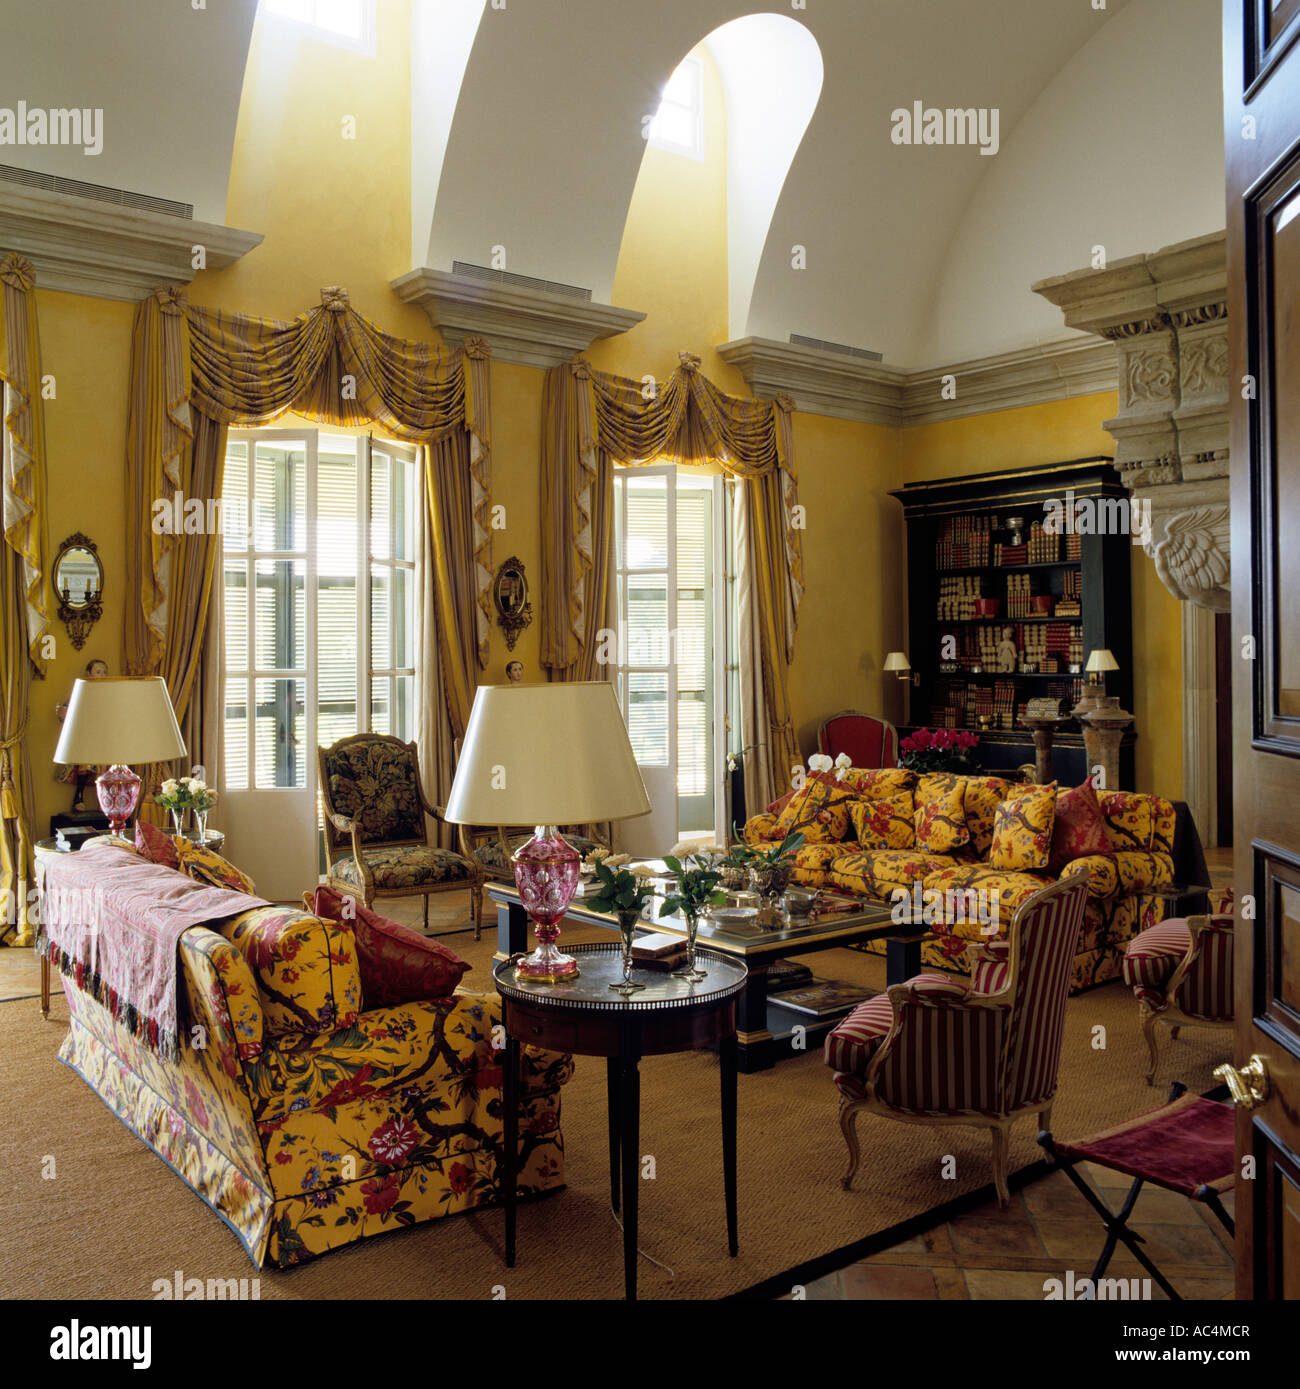 Patterned sofa in drawing room with vaulted skylight Stock Photo ...